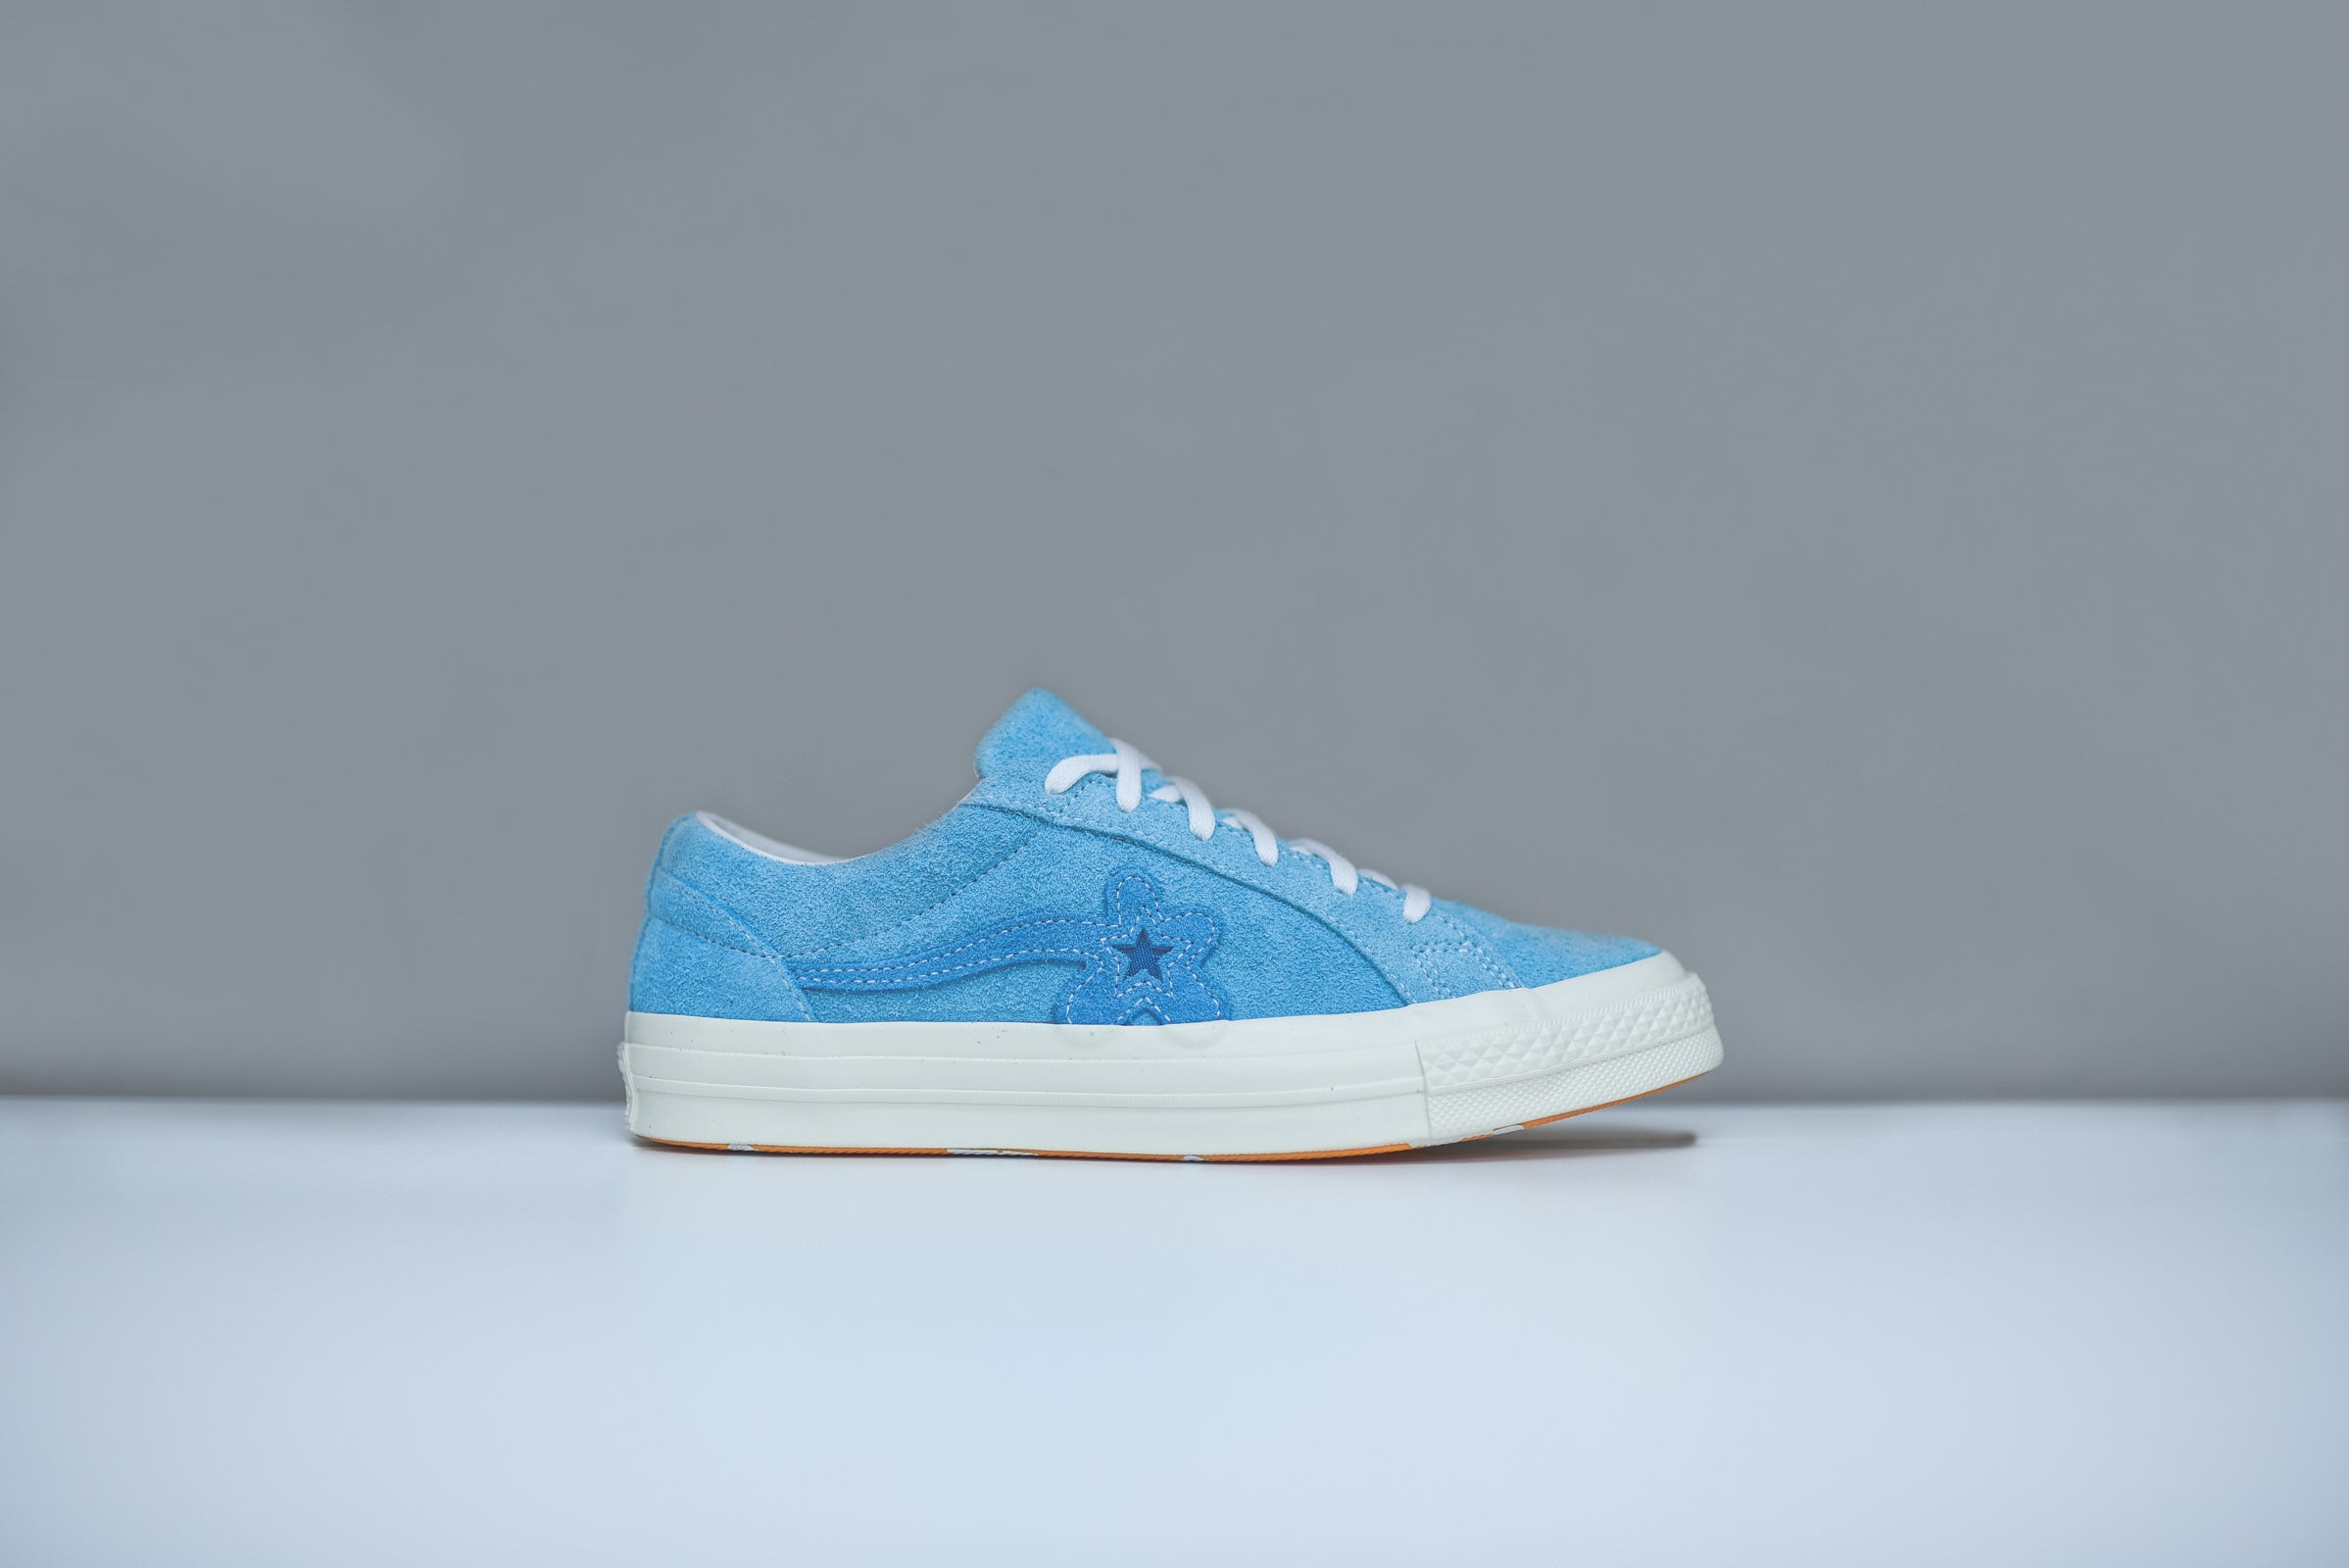 Converse X Golf Le Fleur One Star Bachelor Blue White Kith